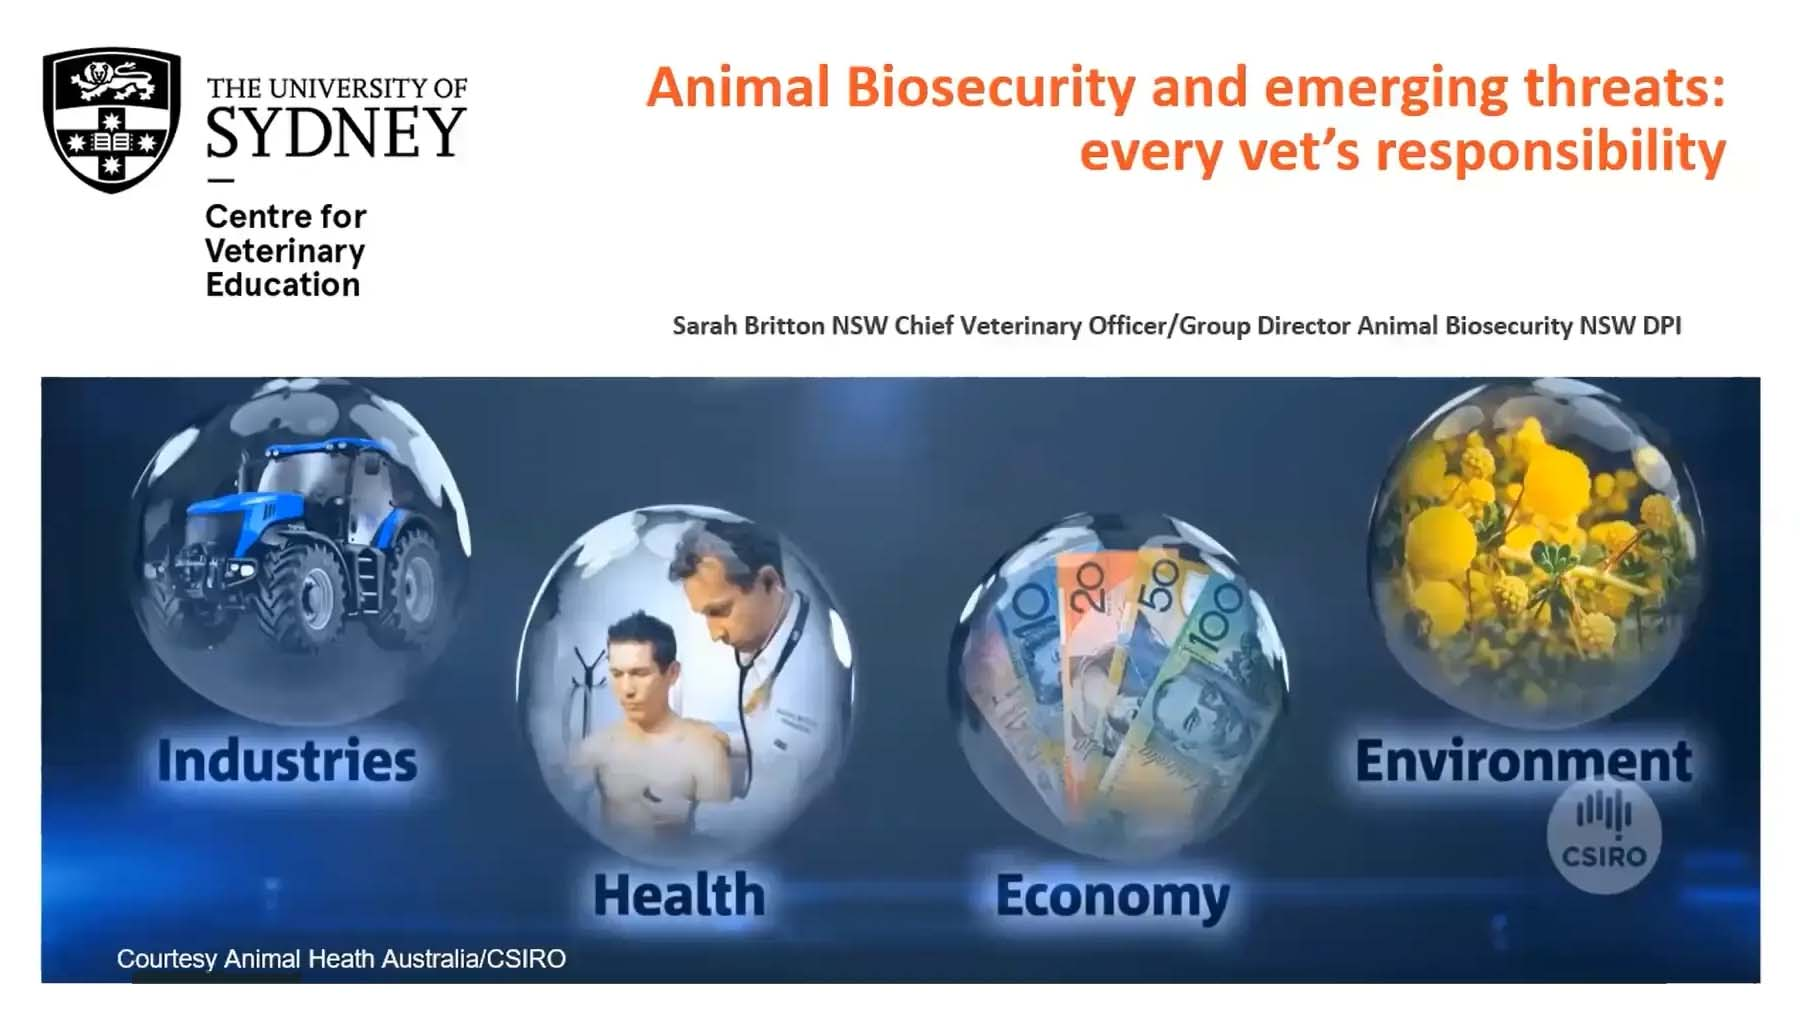 Animal Biosecurity and Emerging Threats: every vet's responsibility